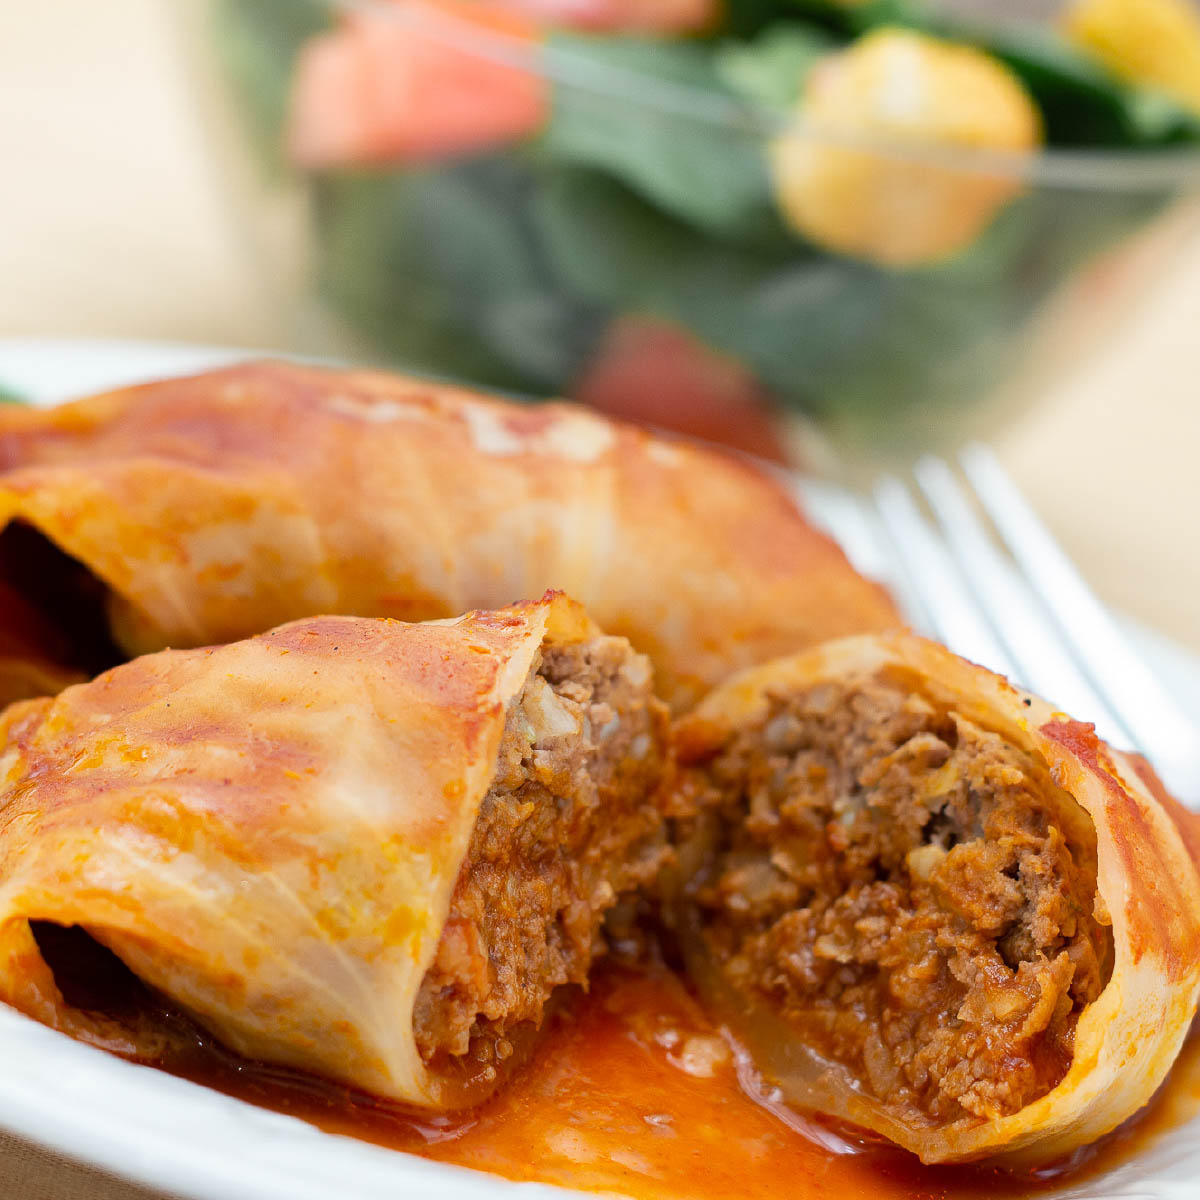 Closeup of cabbage rolls in a tomato sauce on a white plate with a fork. Bowl of salad in the background.